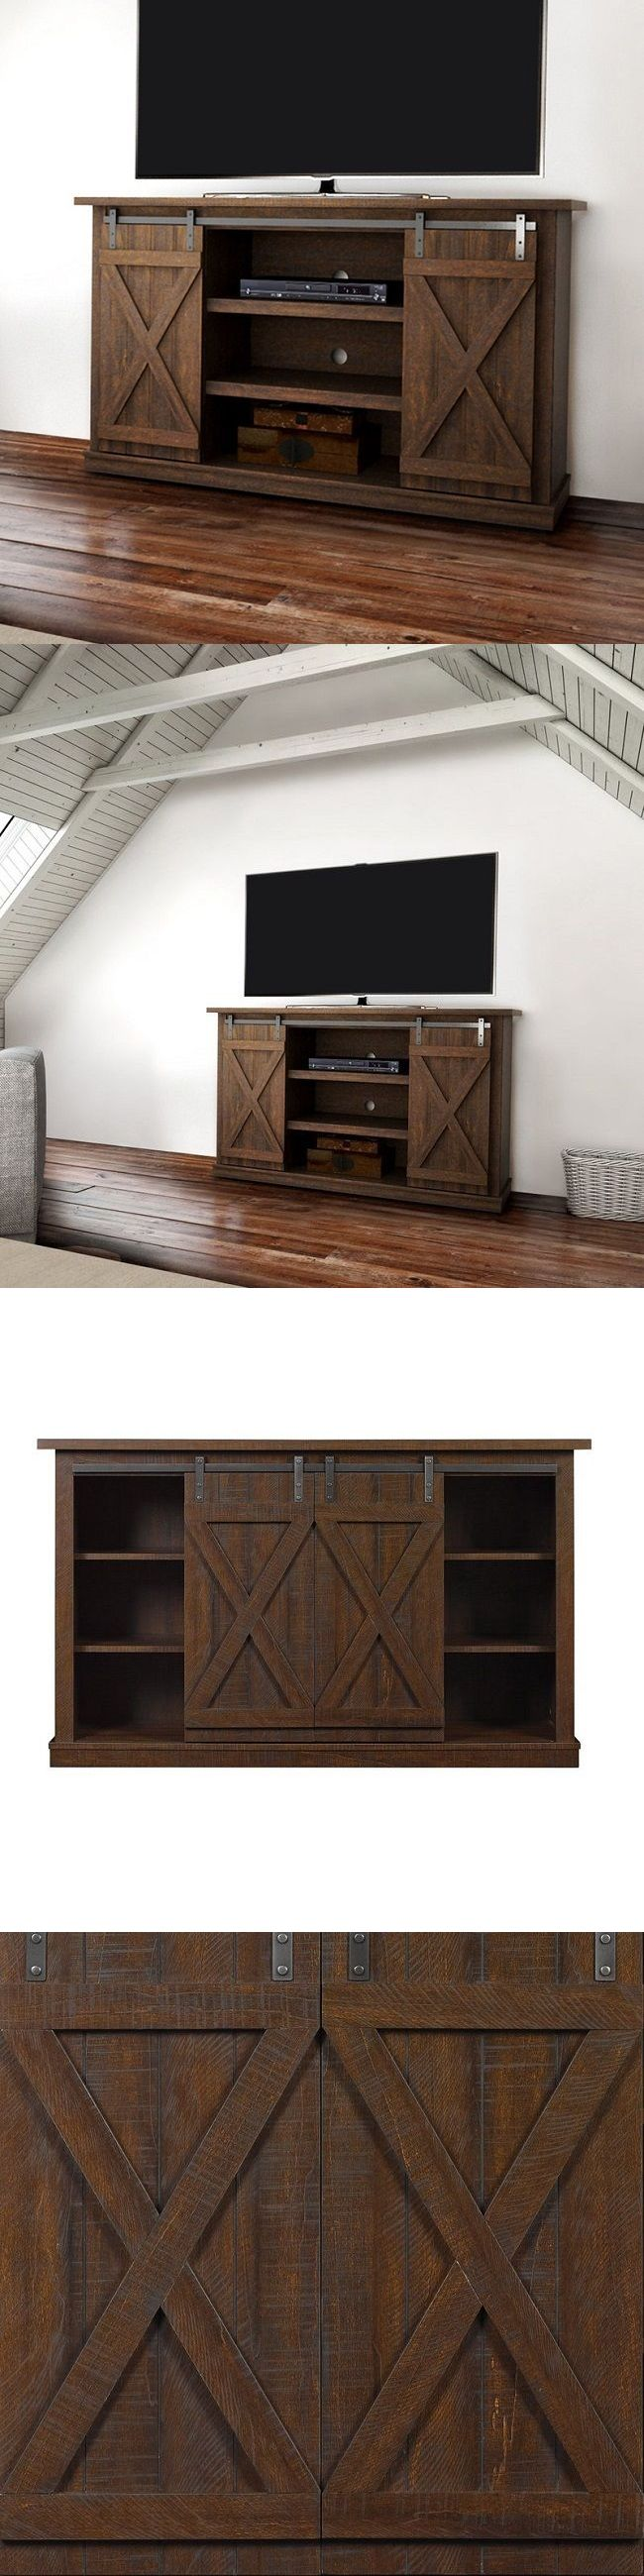 Home shop live tv stands chunky stretch tv stand - Entertainment Units Tv Stands 20488 Rustic Tv Stand Entertainment Center Console Wood Living Room Furniture